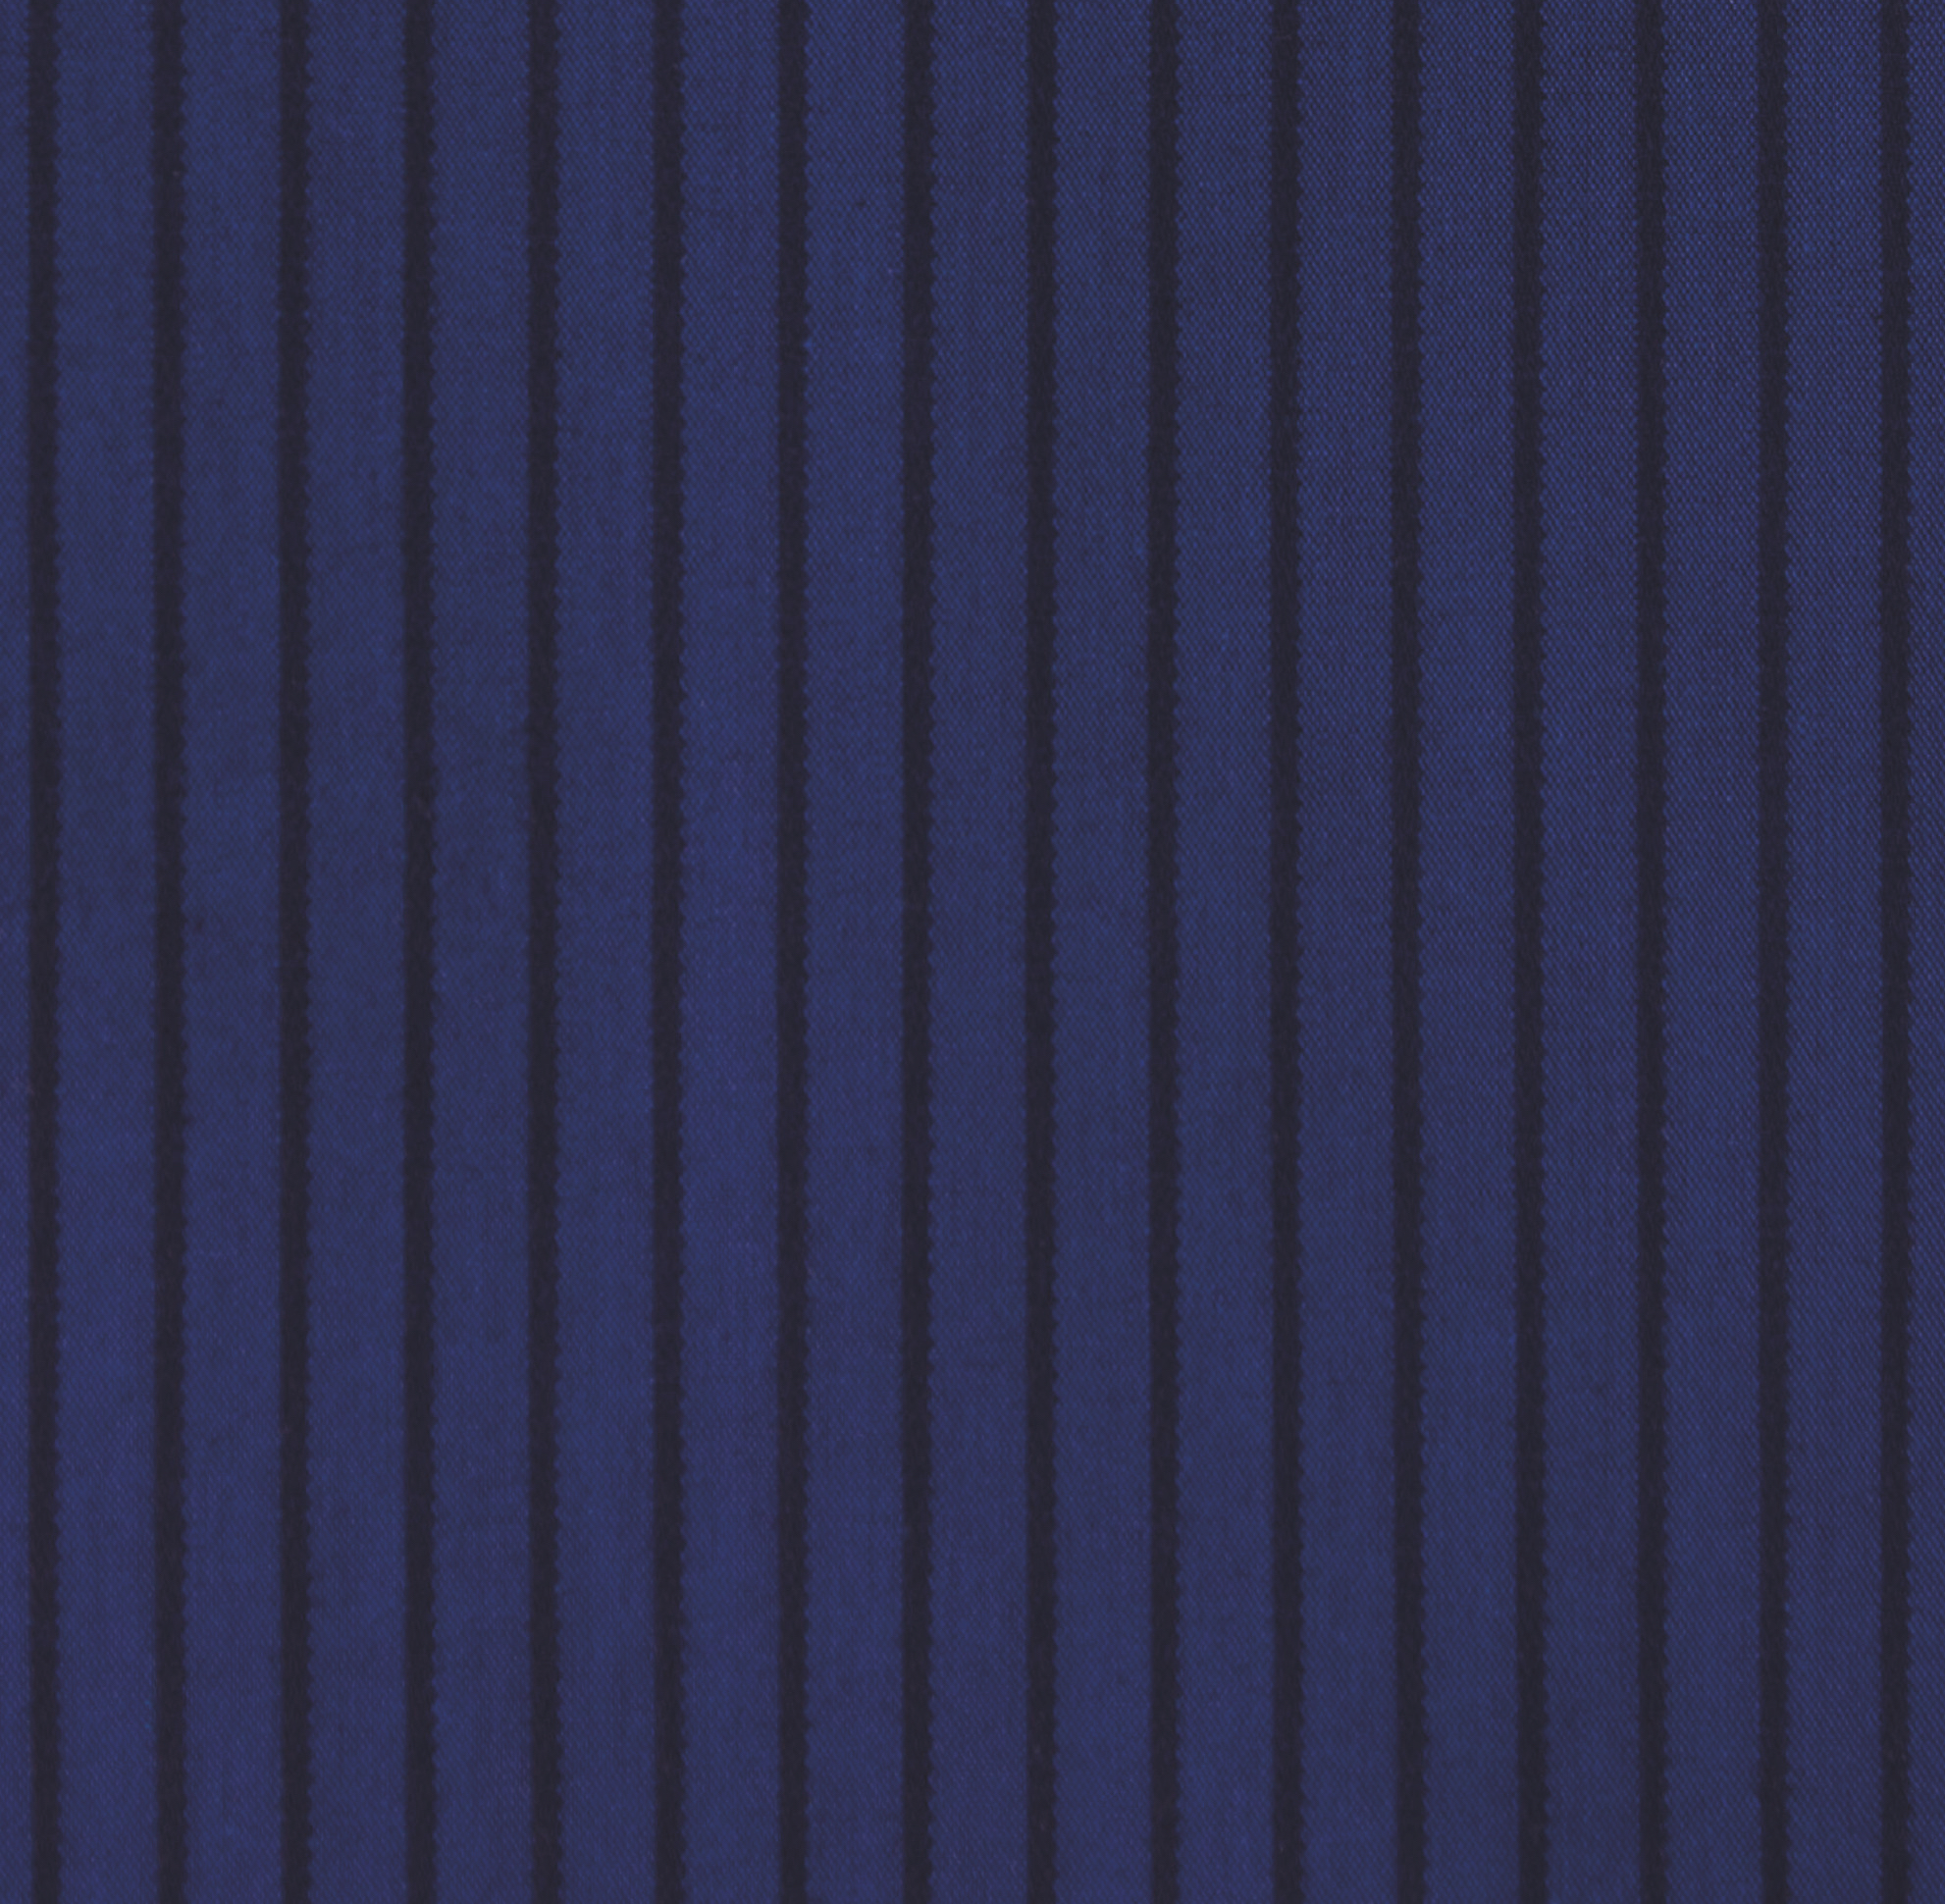 Buy tailor made shirts online - Presidents Range (CLEARANCE) - Navy with Black Stripe